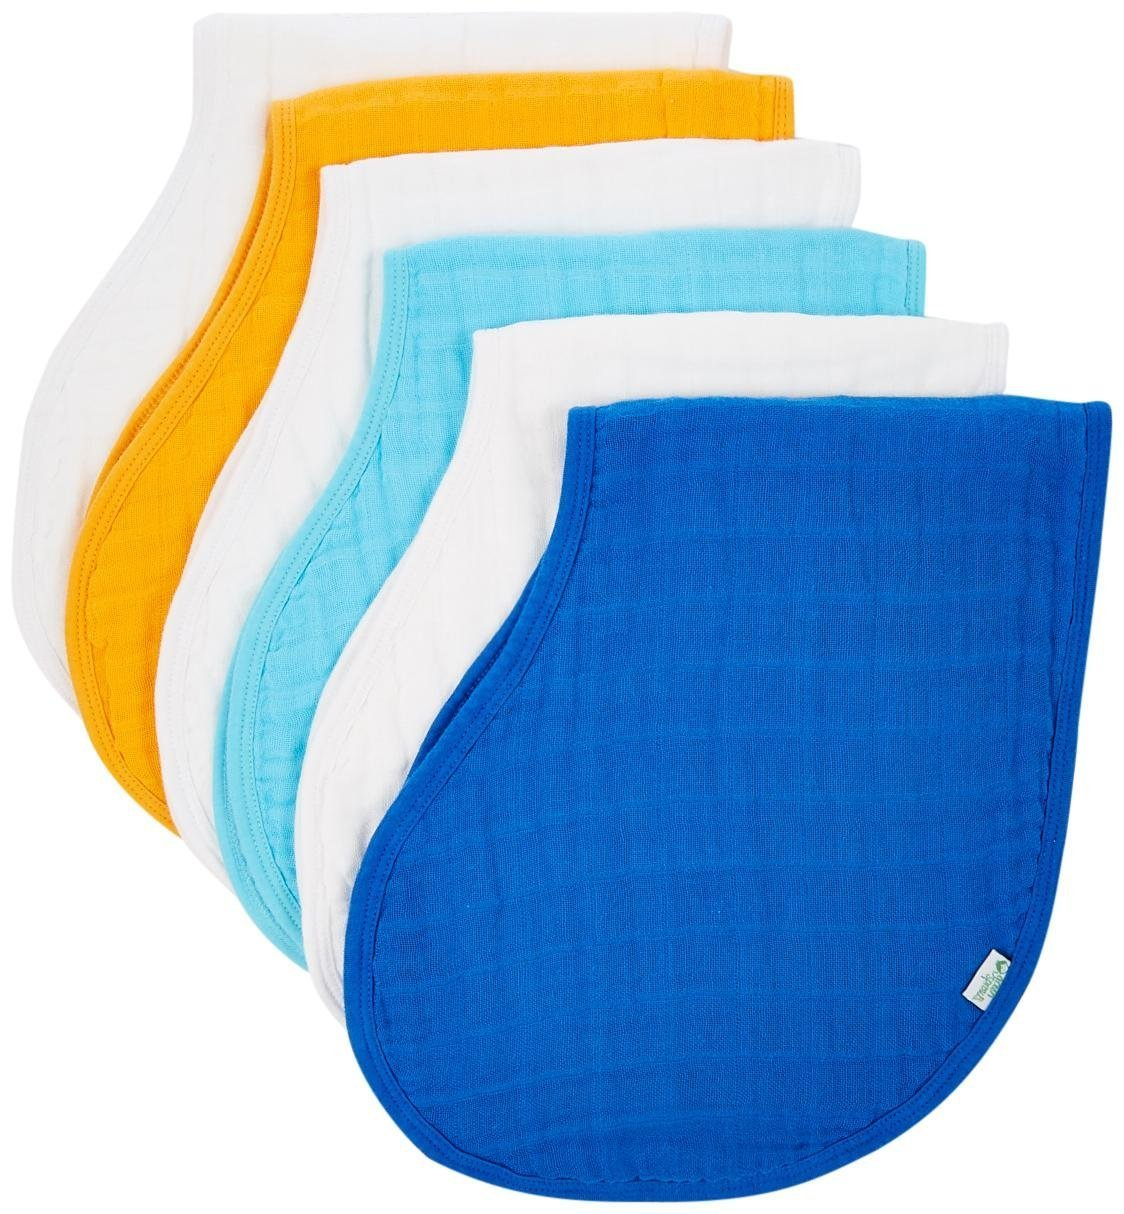 Green Sprouts by i play. Muslin Burp Cloths Made from Organic Cotton, White/Blue, One Size, 2 Pack